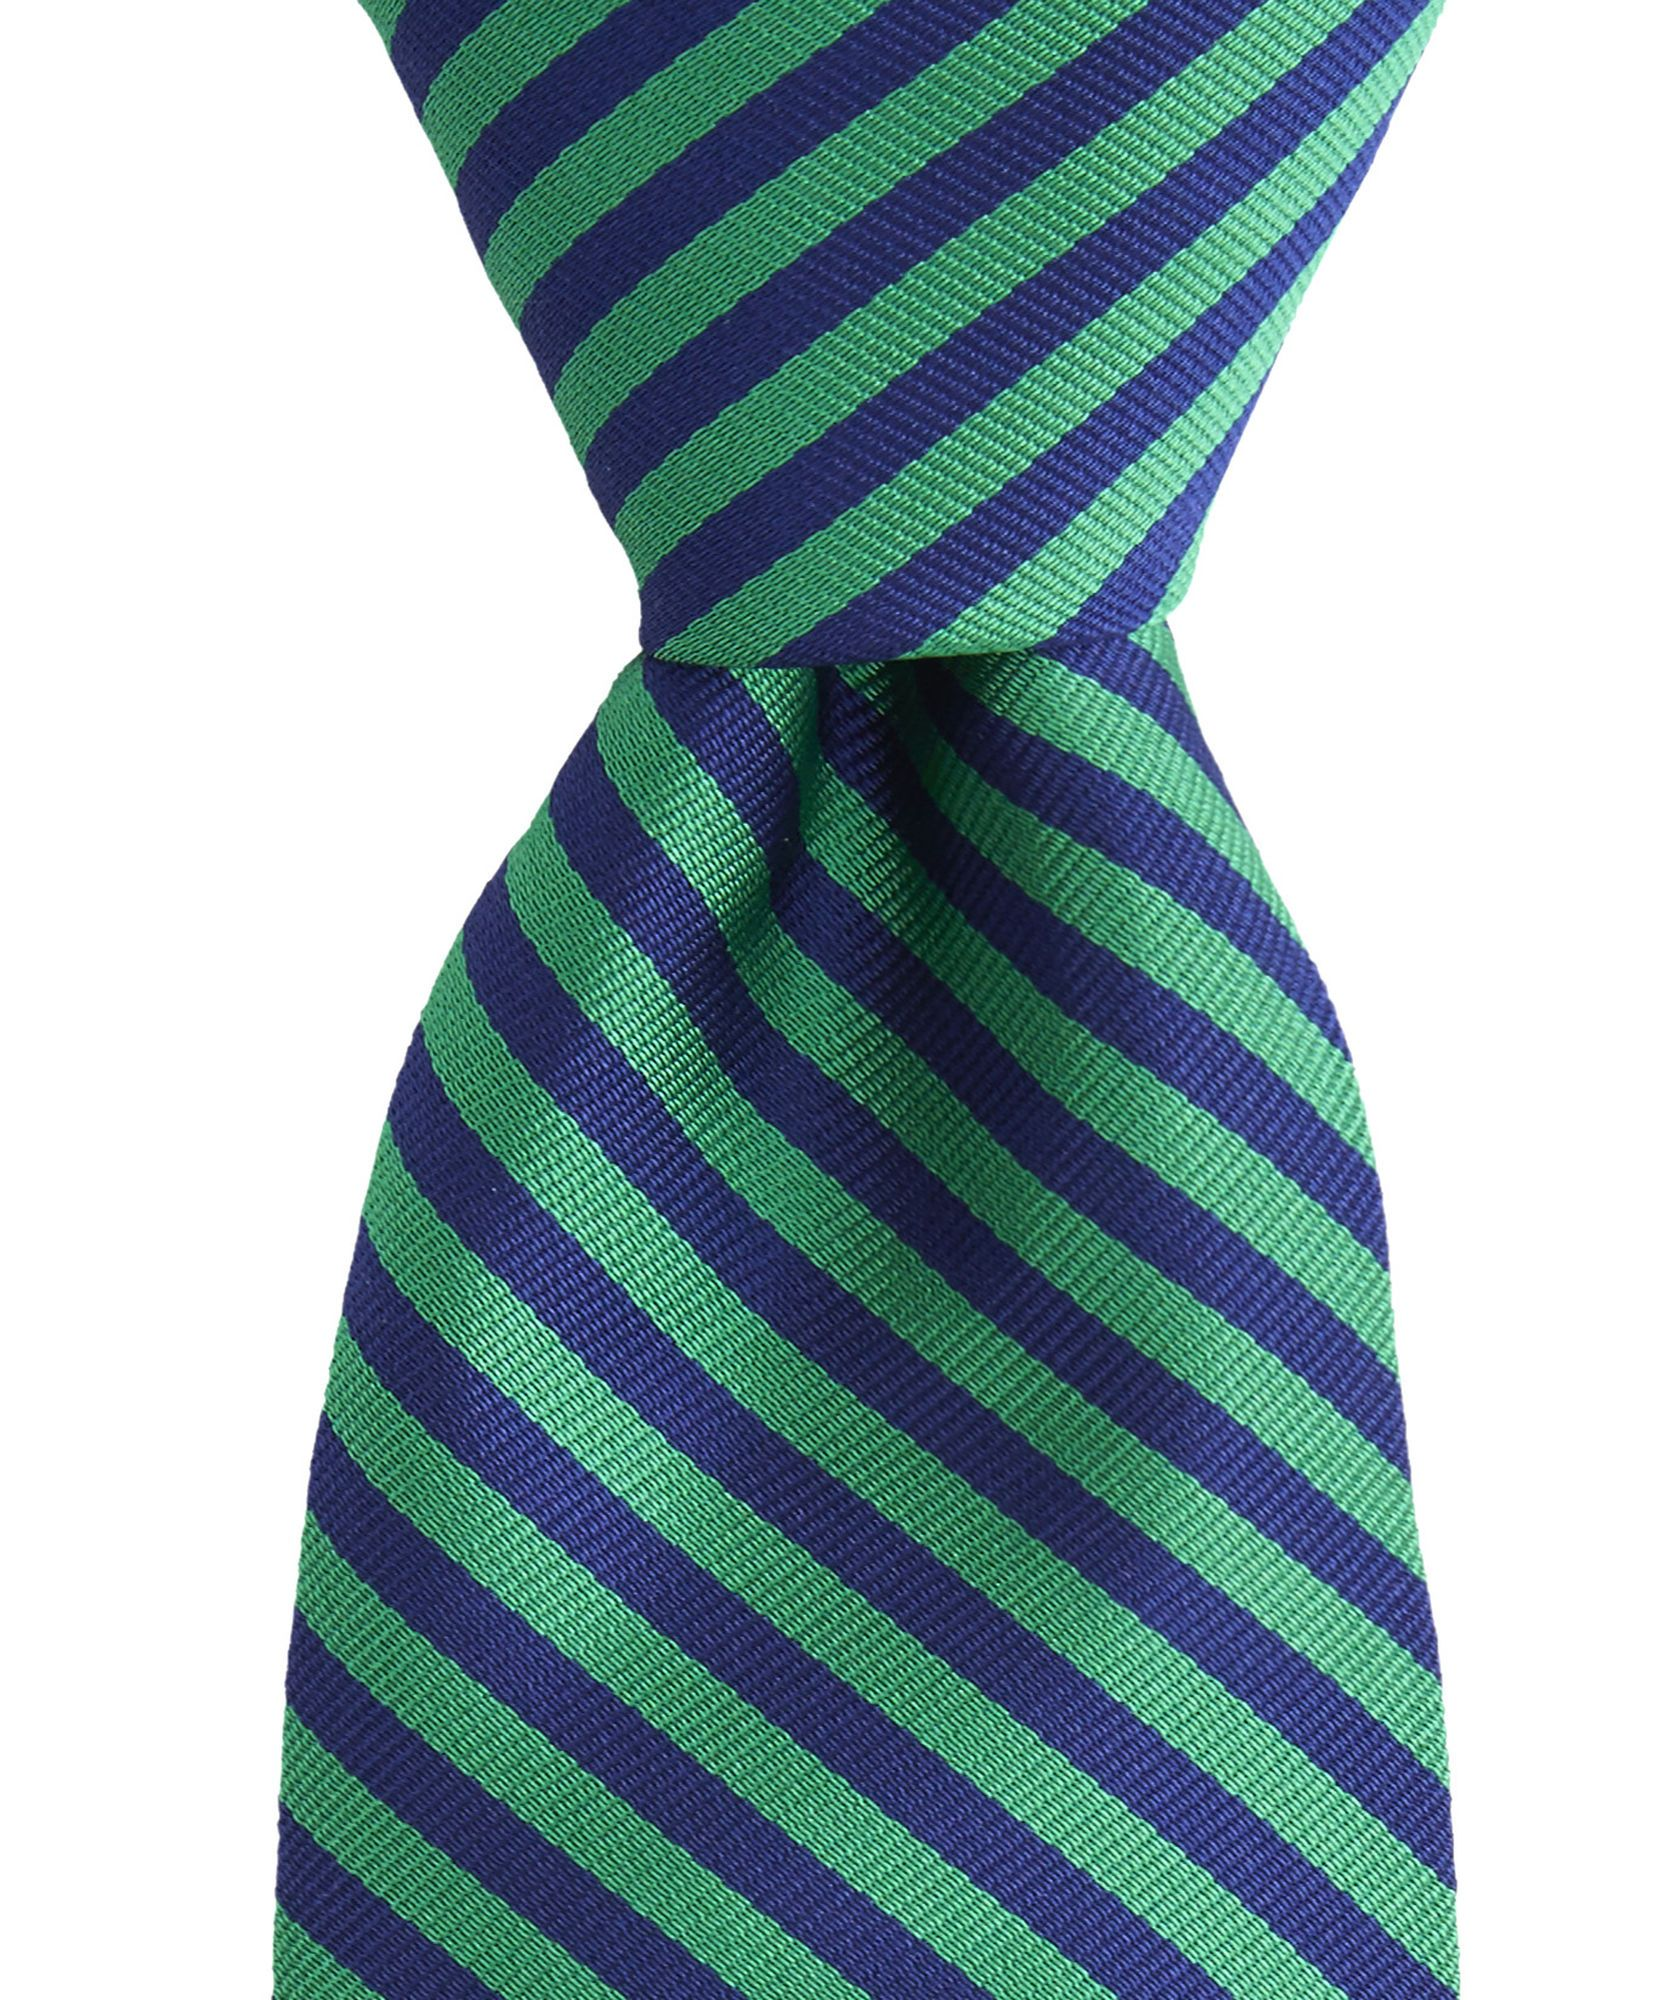 4eca675313c6 Green is cool but colors are off | Election night | Skinny ties, Tie ...